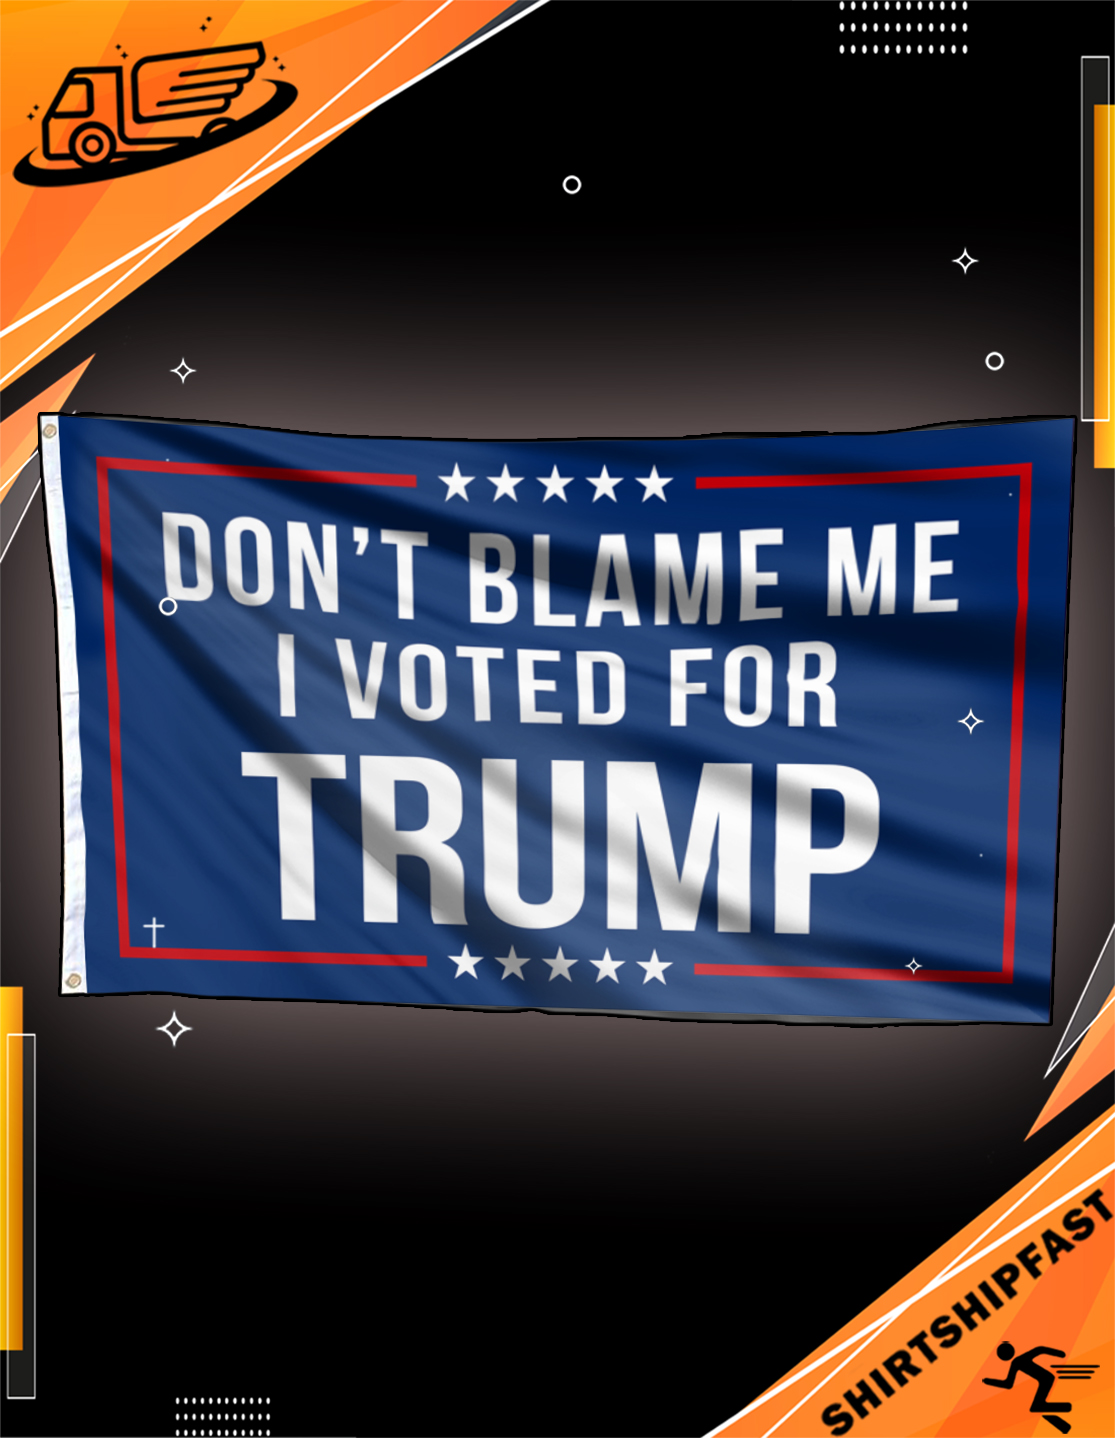 Don't blame me I voted for Trump flag - Picture 3